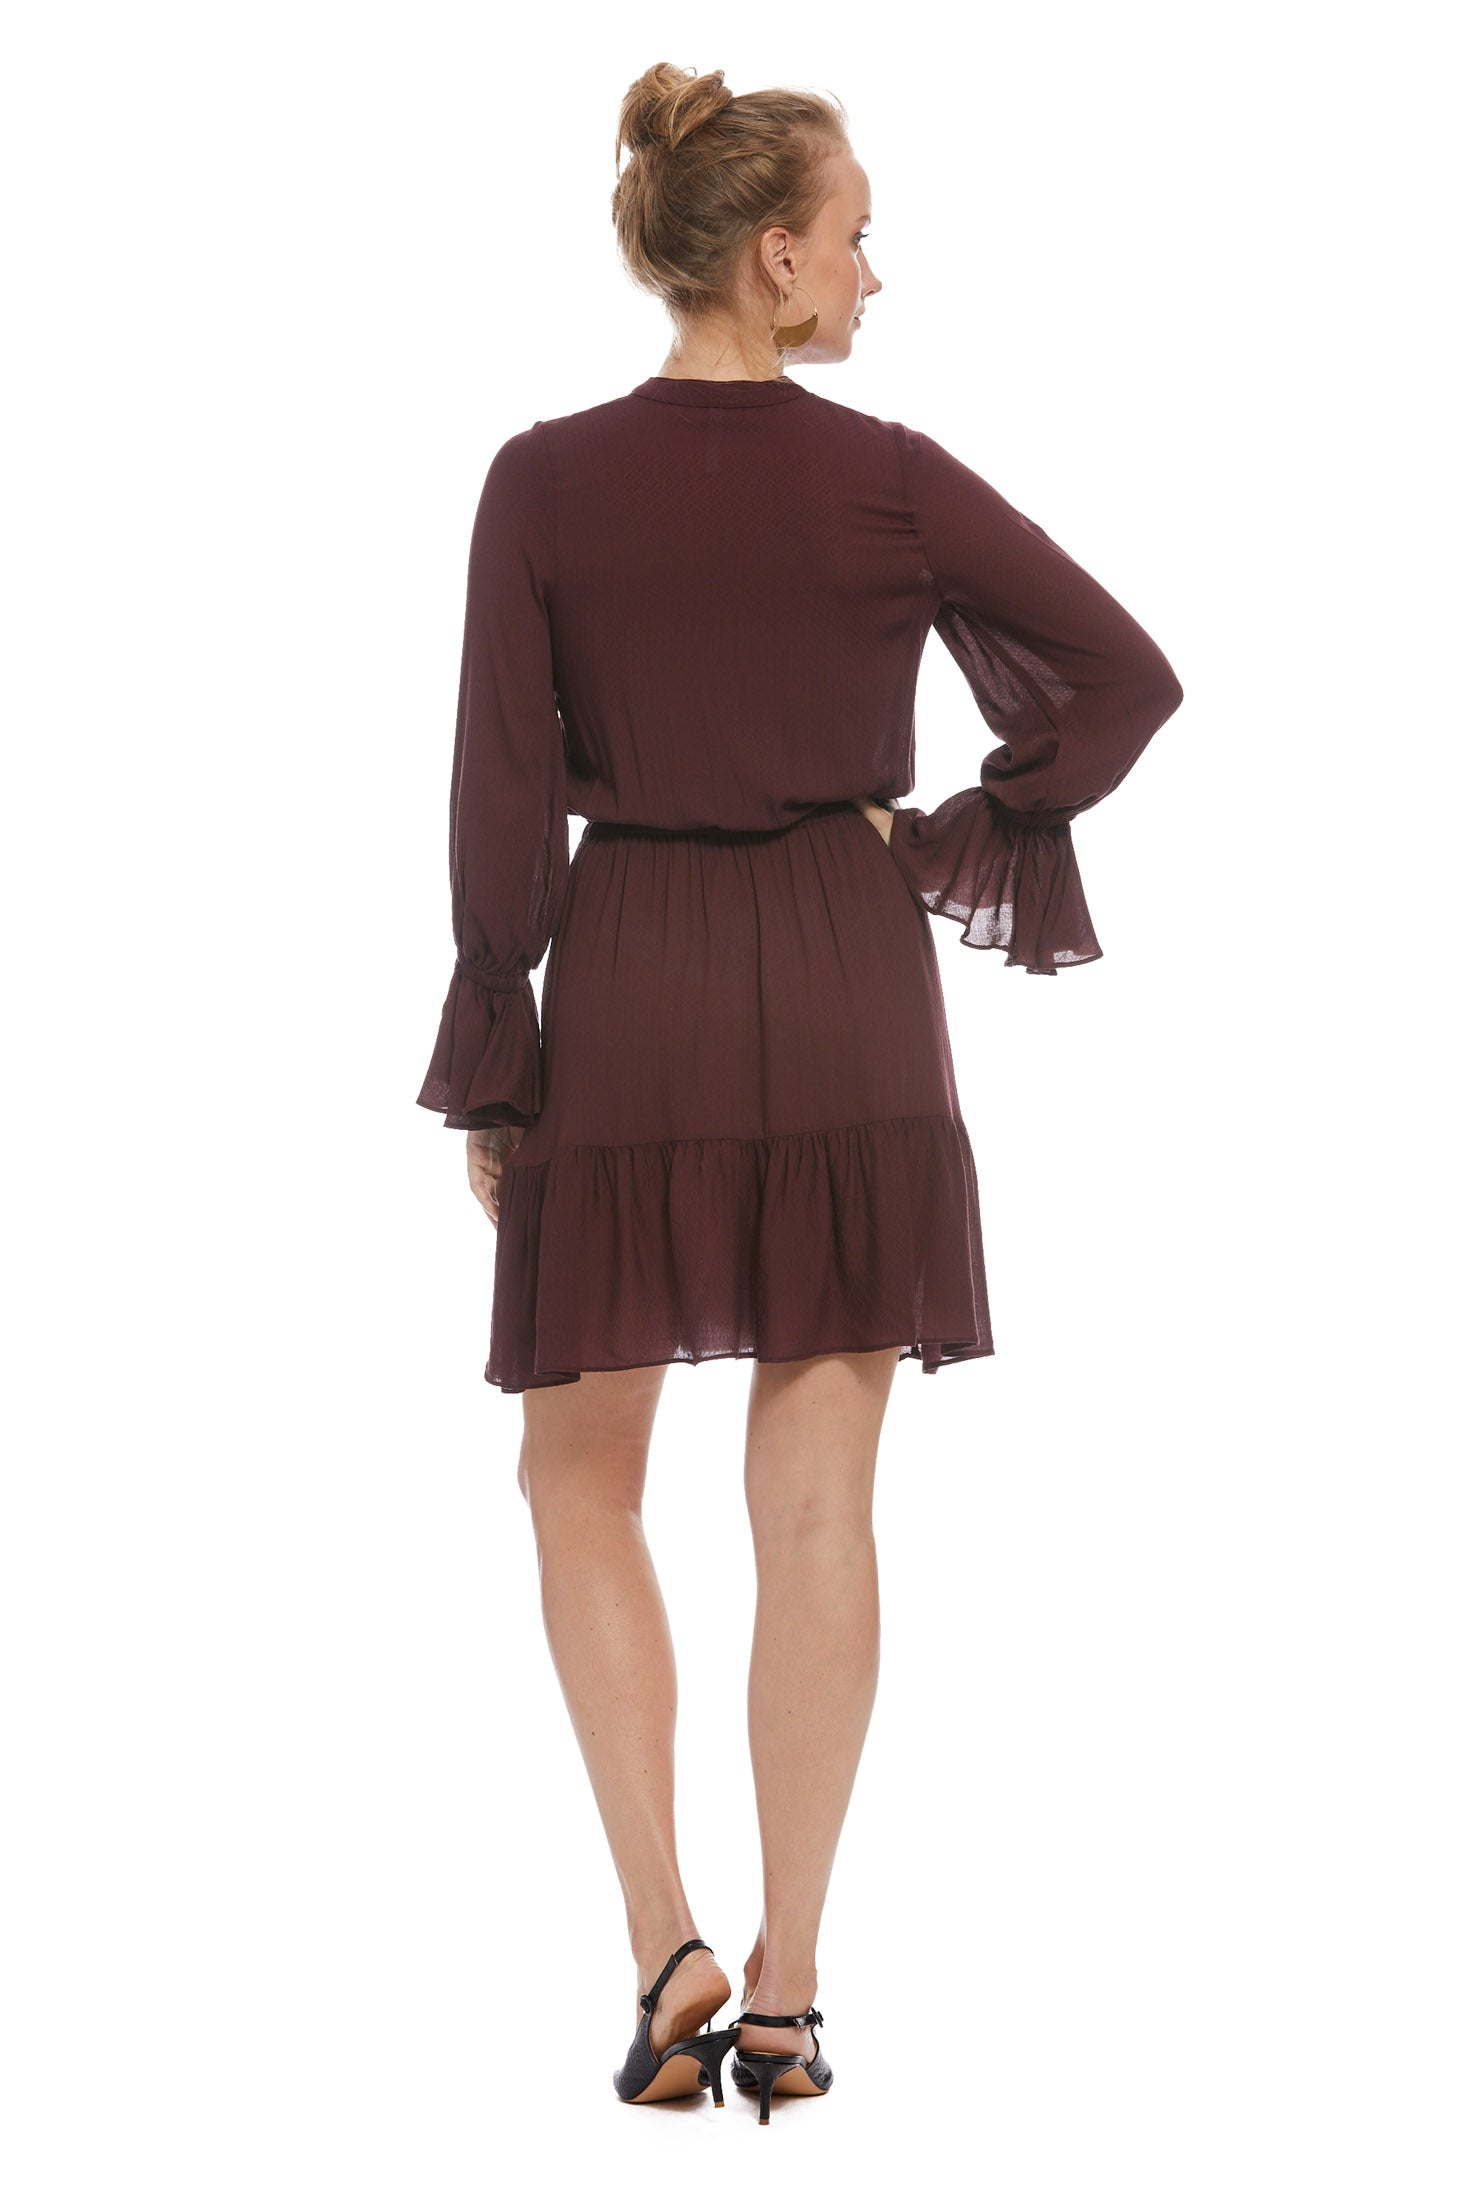 Pointelle Rayon Amaya Dress - Merlot